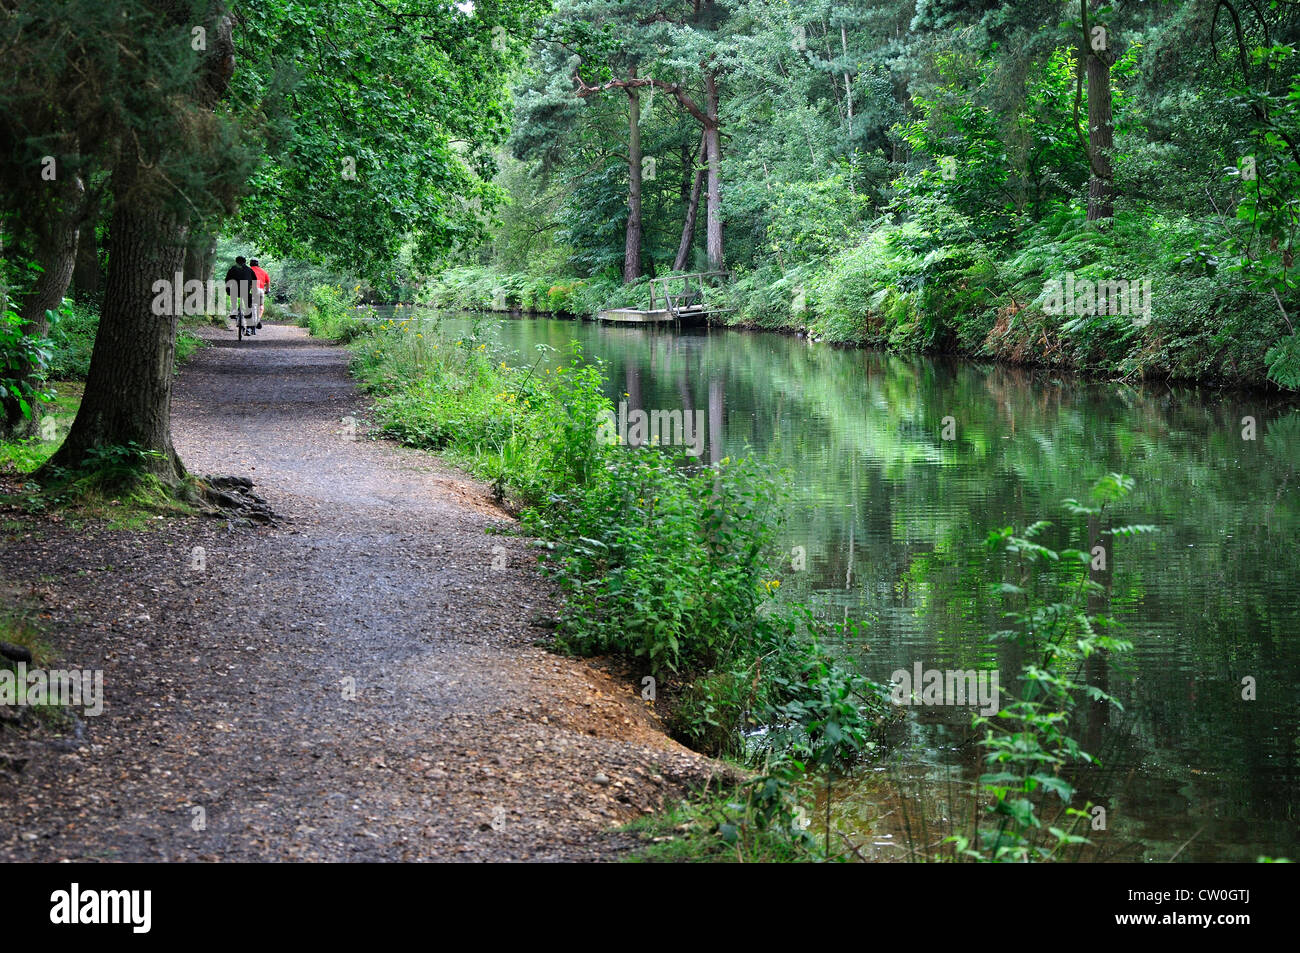 A view of the Basingstoke Canal UK - Stock Image